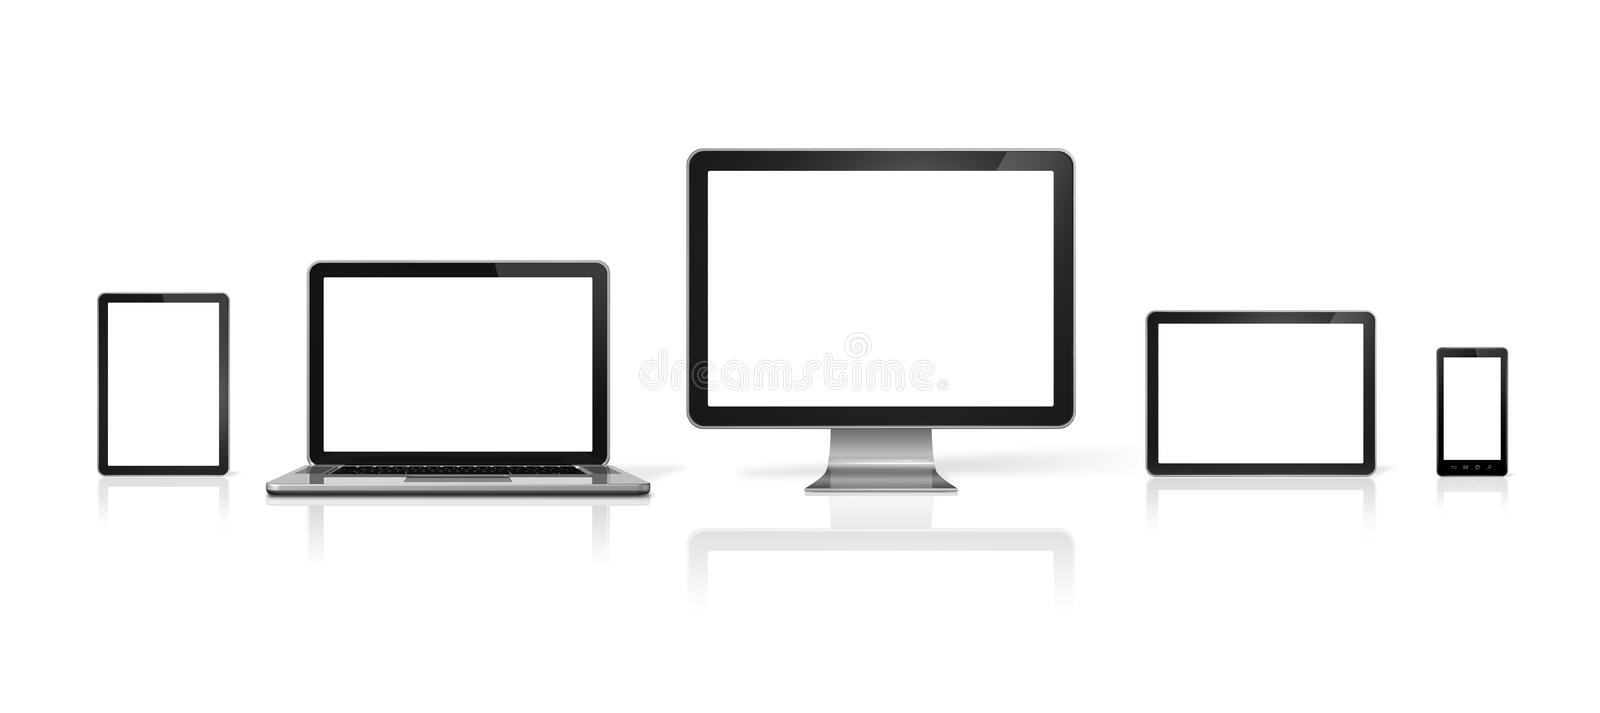 Computer, laptop, mobiele telefoon en digitale tabletpc vector illustratie